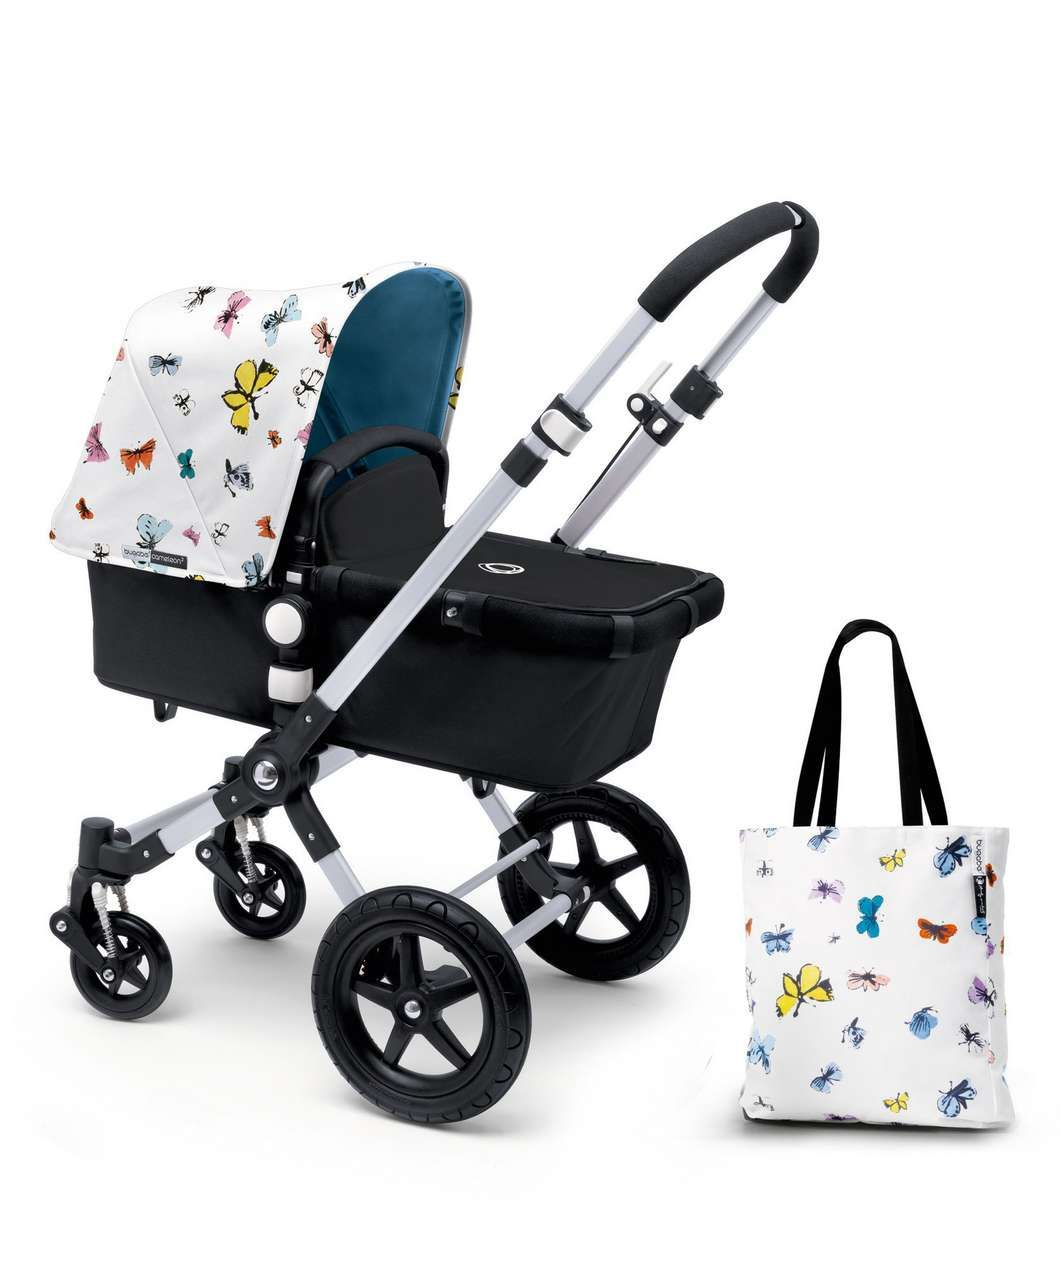 Super Limited Edition Bugaboo Cameleon³ Base + Andy Warhol Sun Canopy NG-87